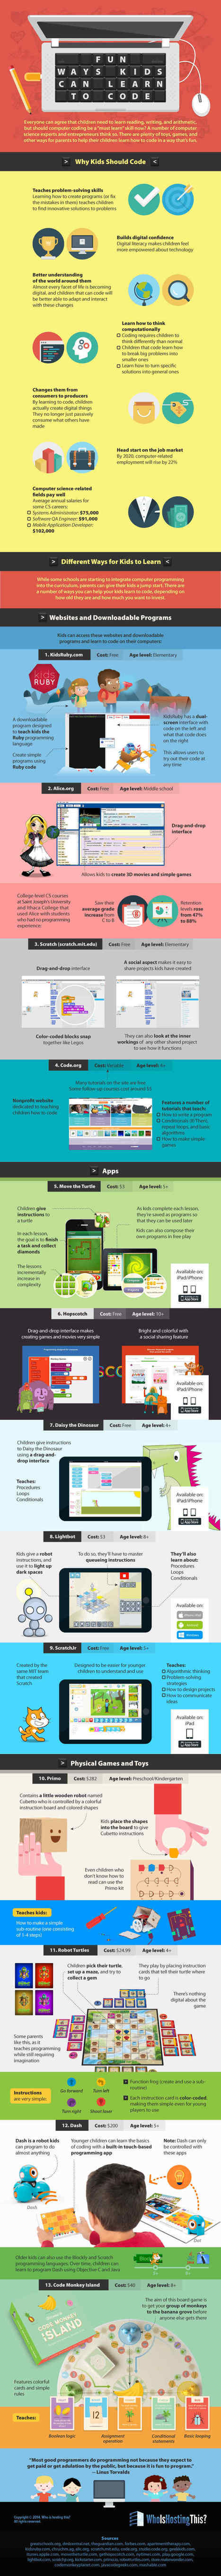 Easy And Fun Ways Kids Can Learn to Code | Competències digitals | Scoop.it